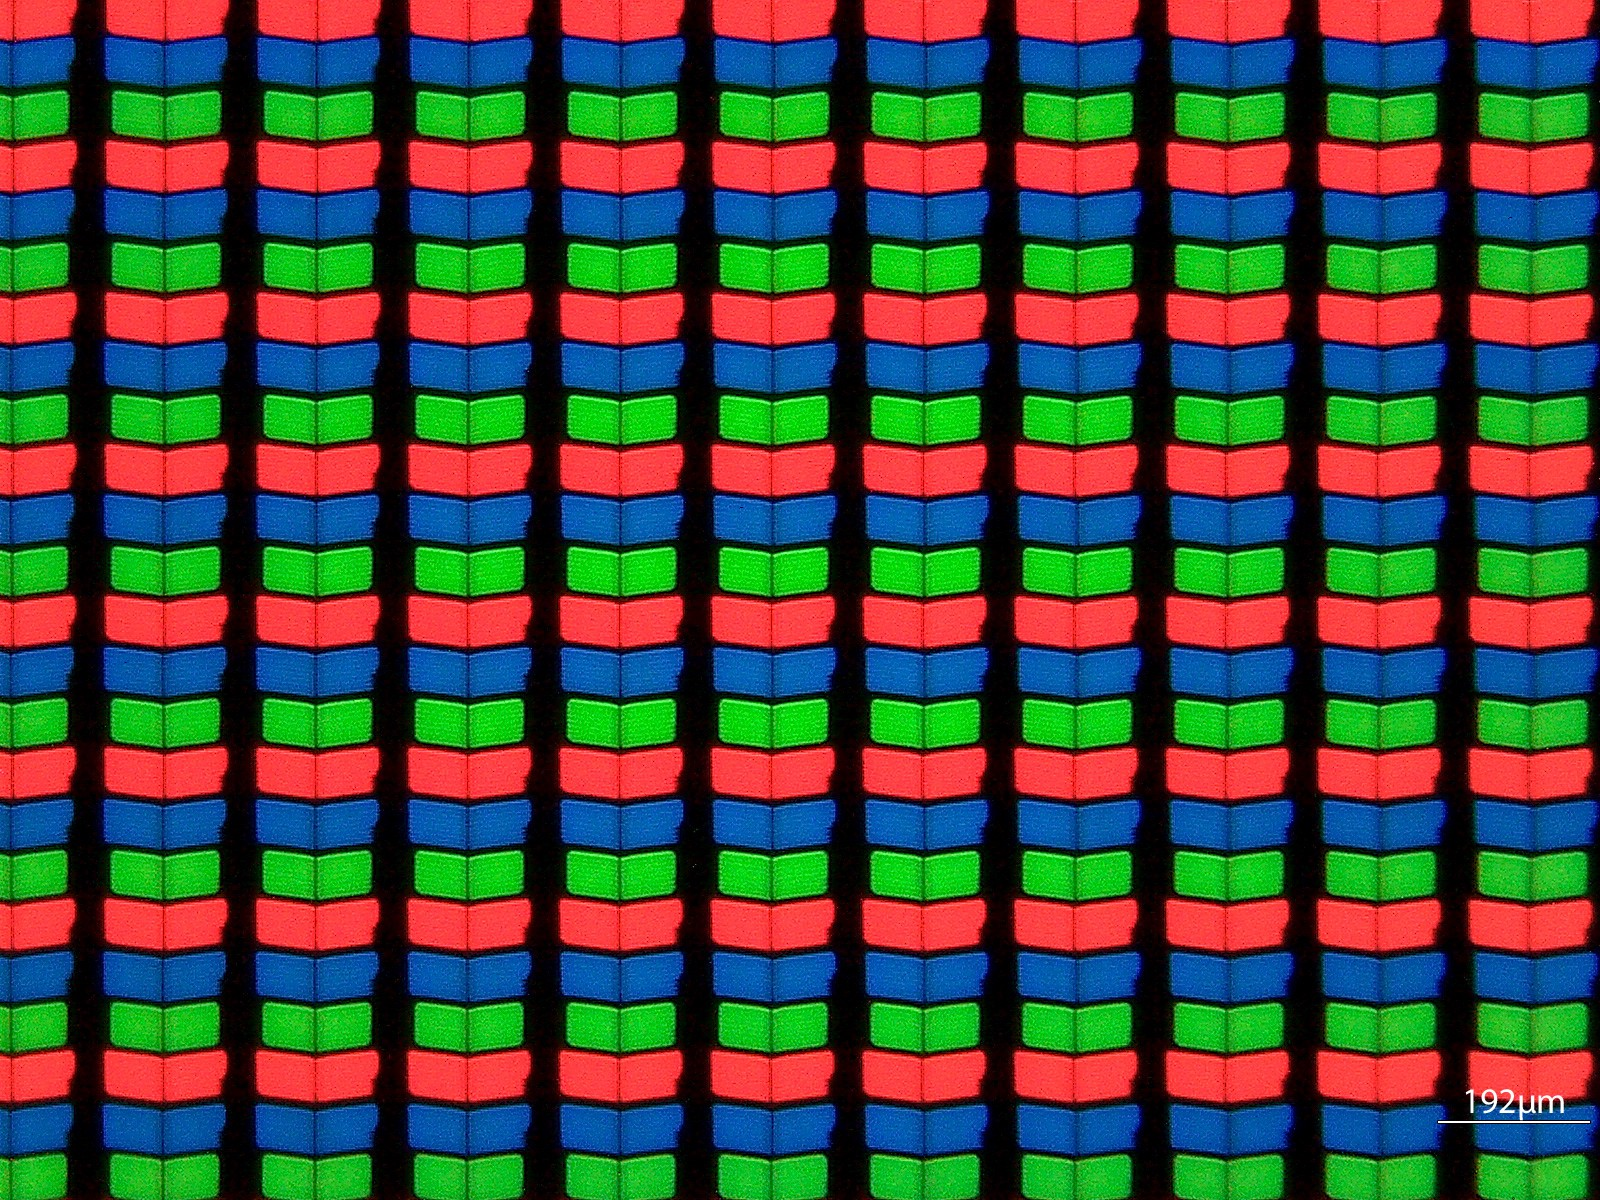 A closeup photo of red, green and blue pixels under a microscope.